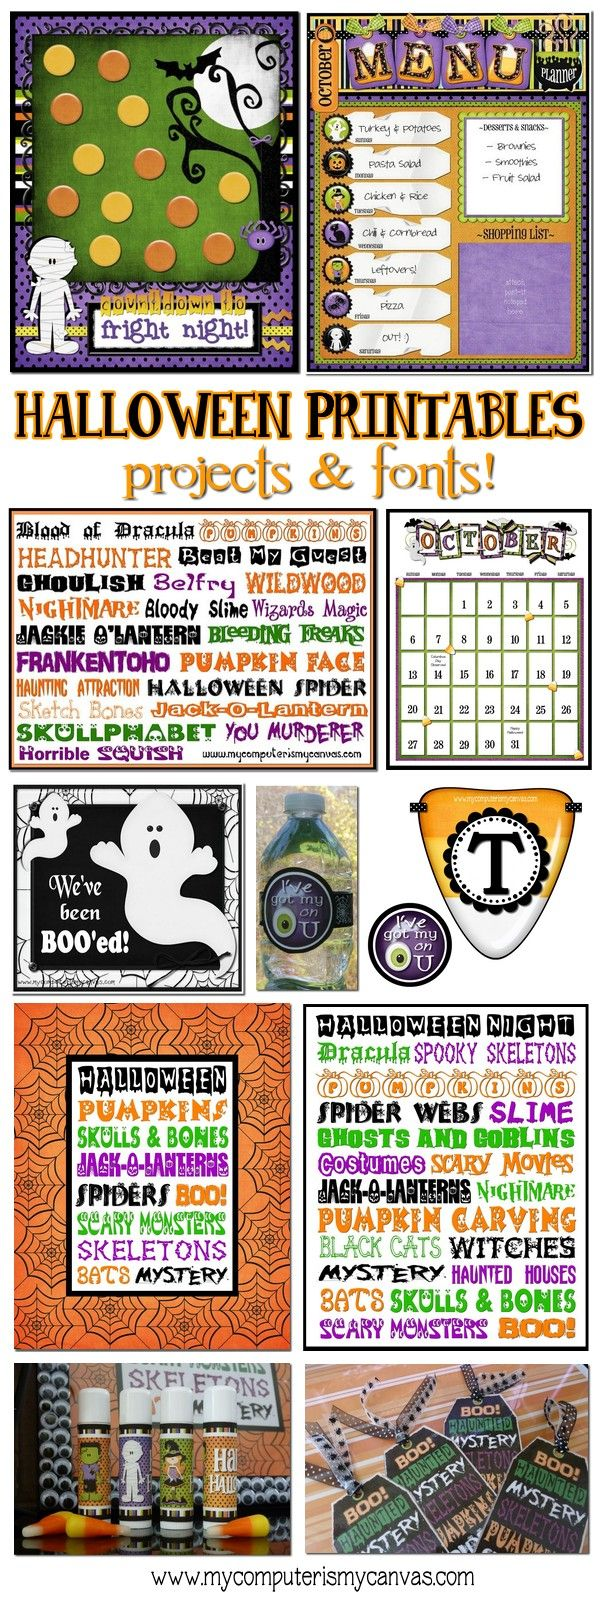 Halloween Printables, Projects & Fonts